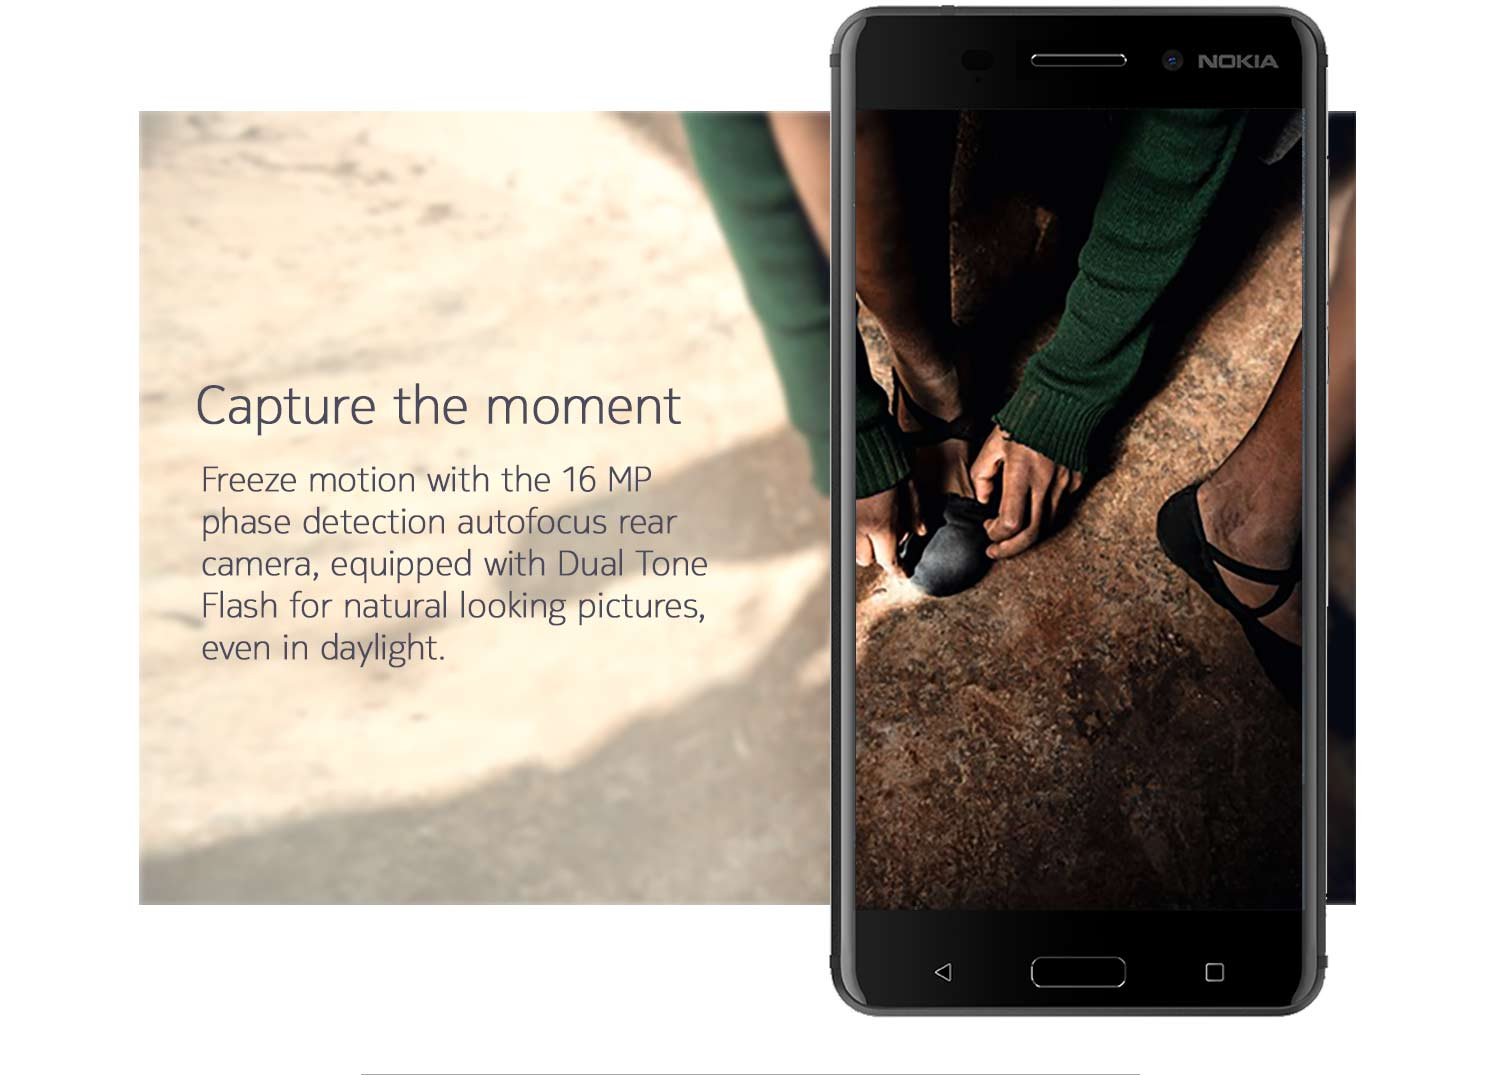 Capture the moment with the 16MP camera